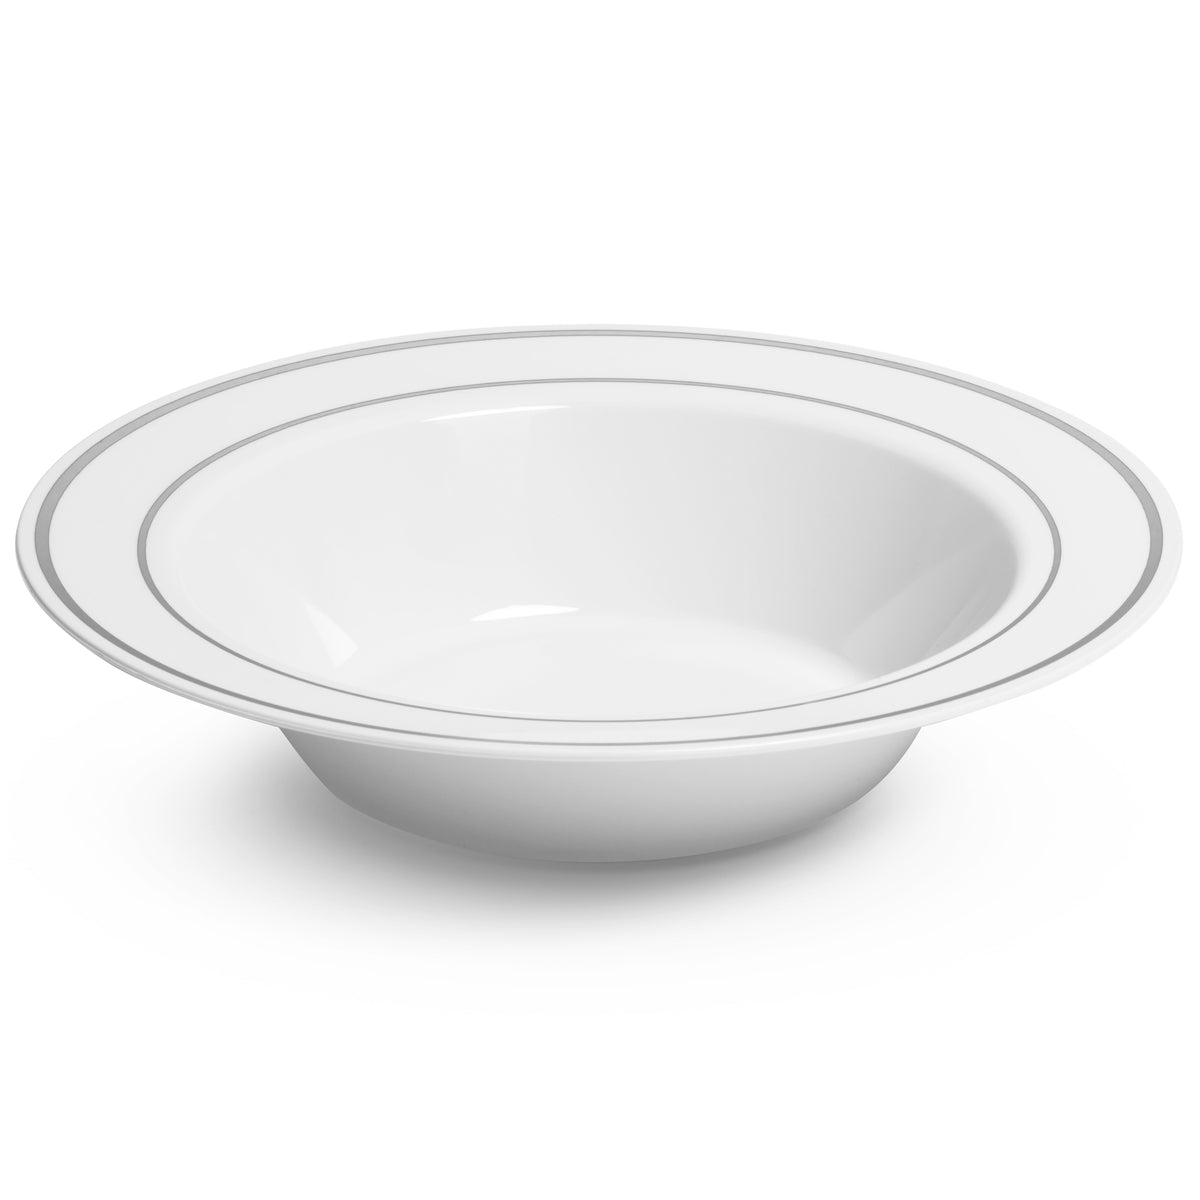 side view of hard plastic bowl